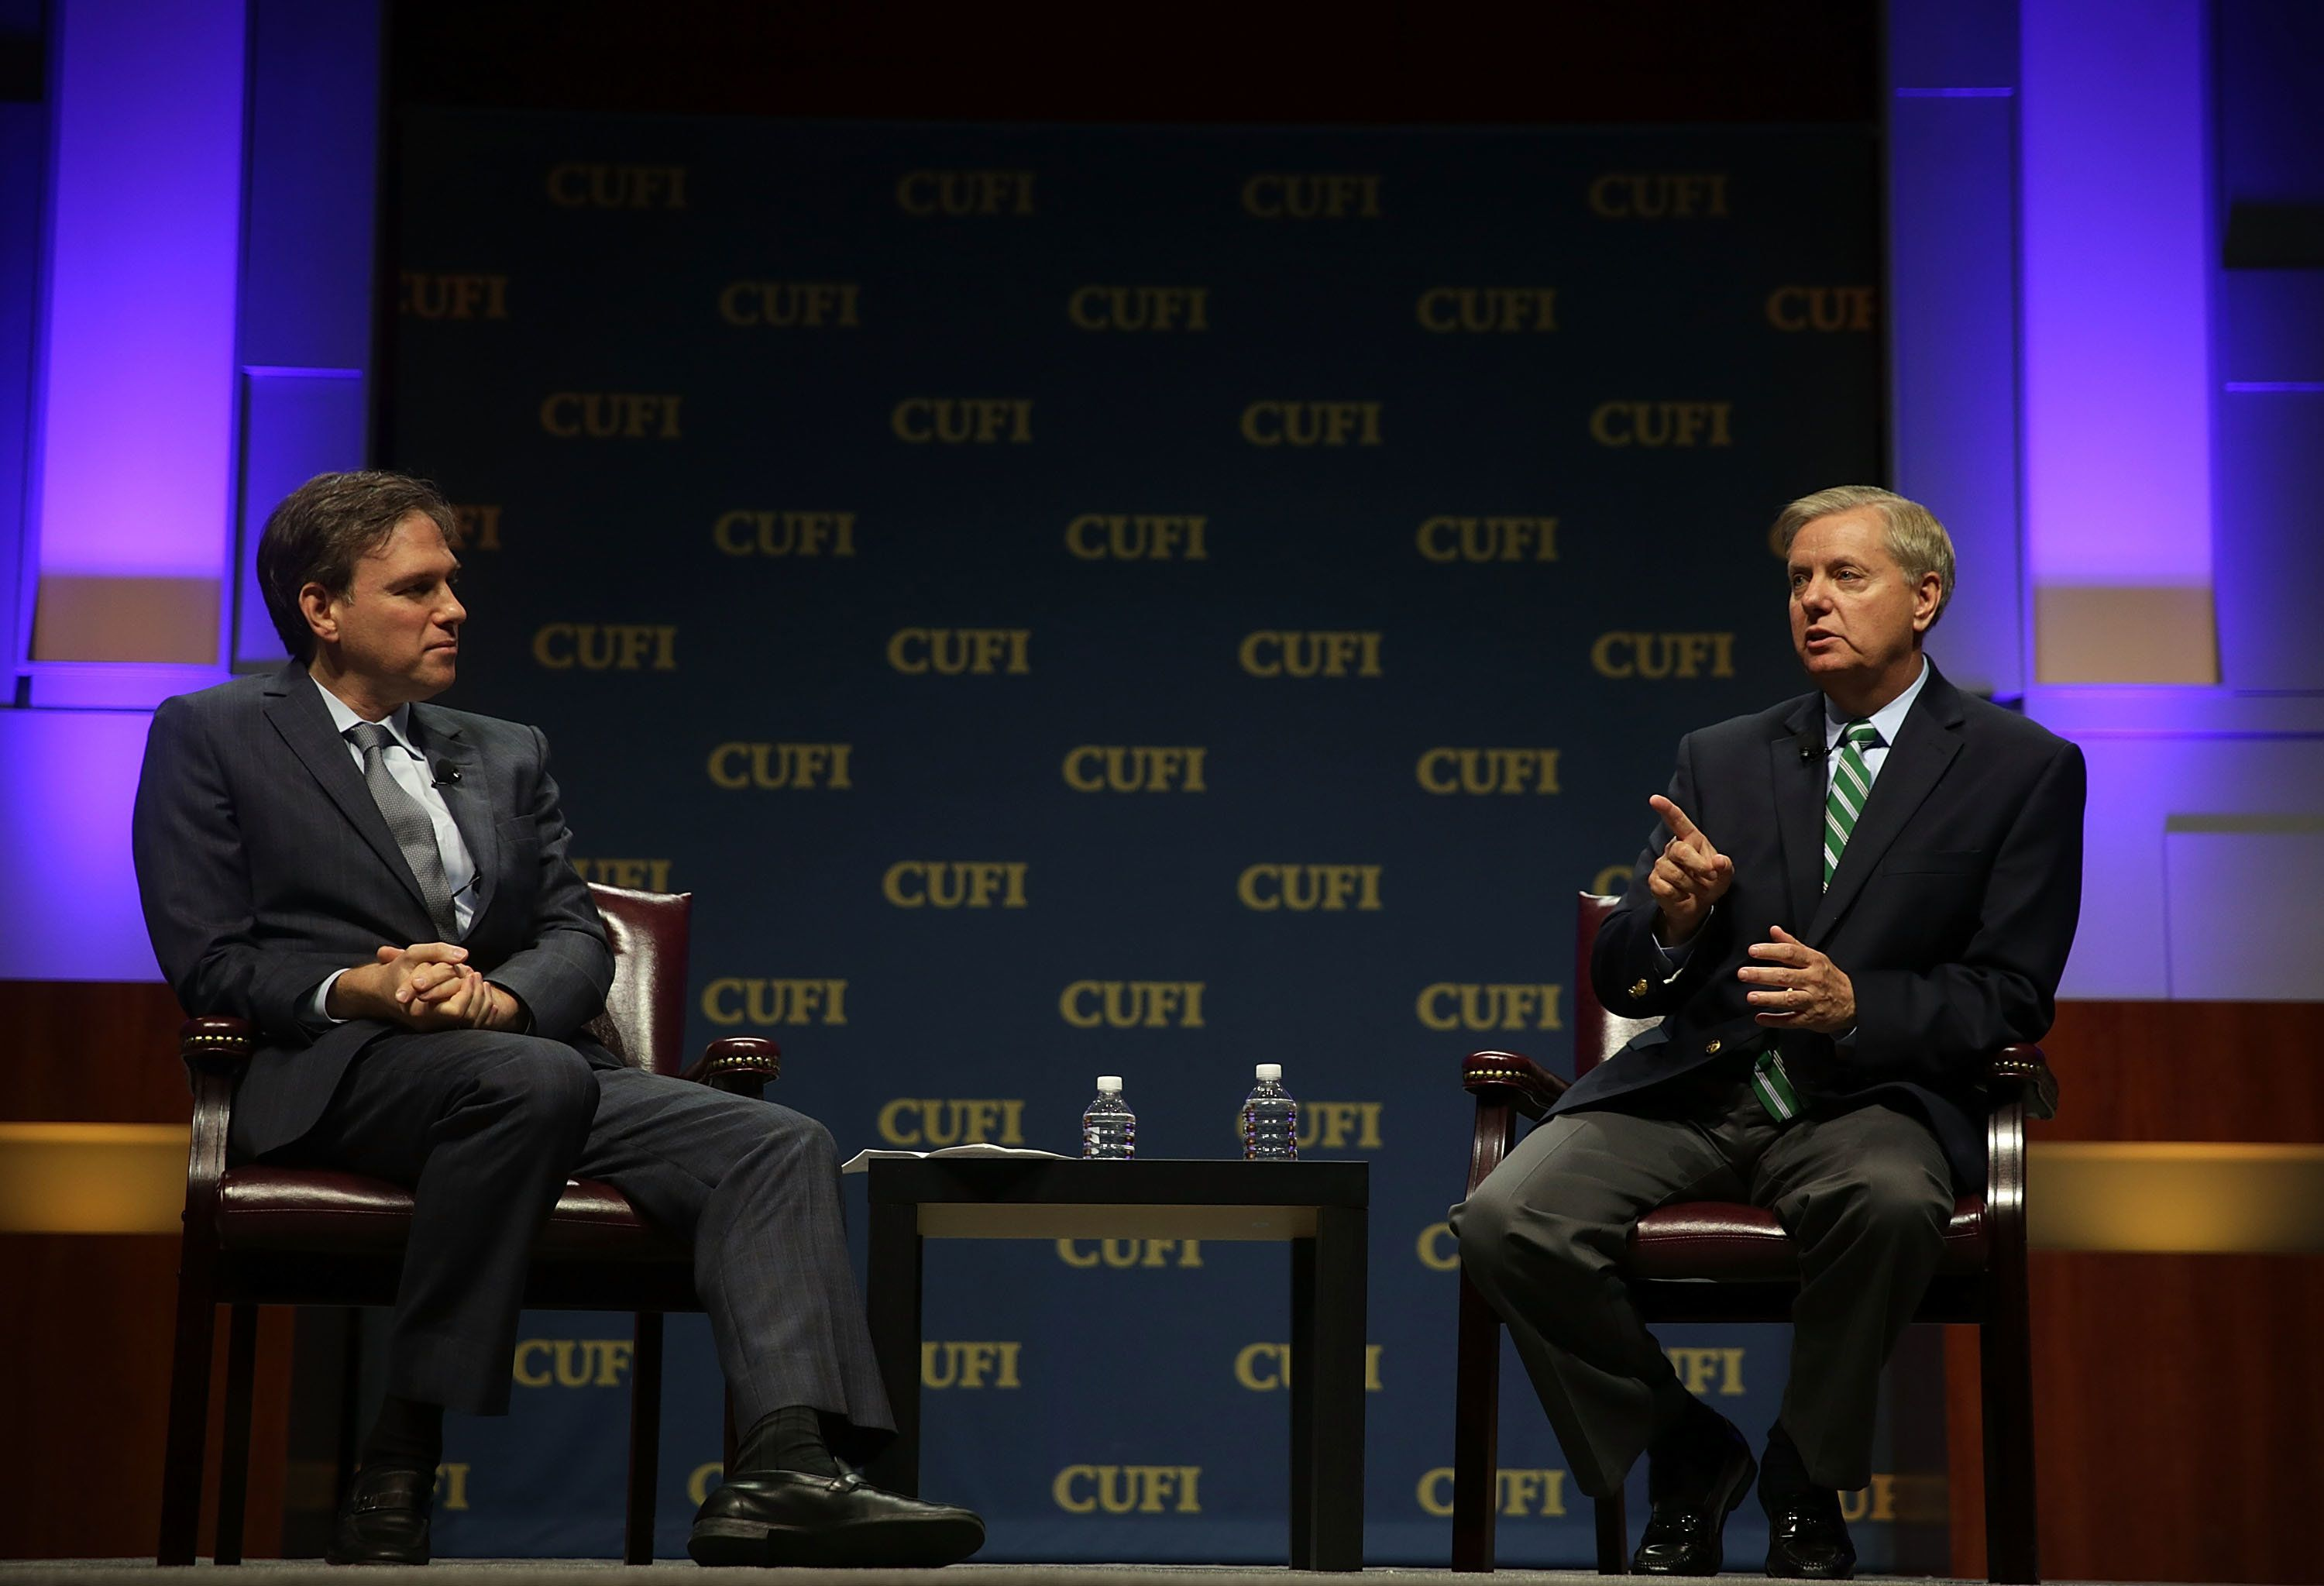 WASHINGTON, DC - JULY 13:  Republican U.S. presidential hopeful, Sen. Lindsey Graham (R-SC) (R) participates in a discussion with moderator Bret Stephens of the Wall Street Journal during a Christians United for Israel summit July 13, 2015 in Washington, DC. A number of Republican presidential hopefuls were invited to speak at Christian United for Israel's 10th annual Washington summit.  (Photo by Alex Wong/Getty Images)